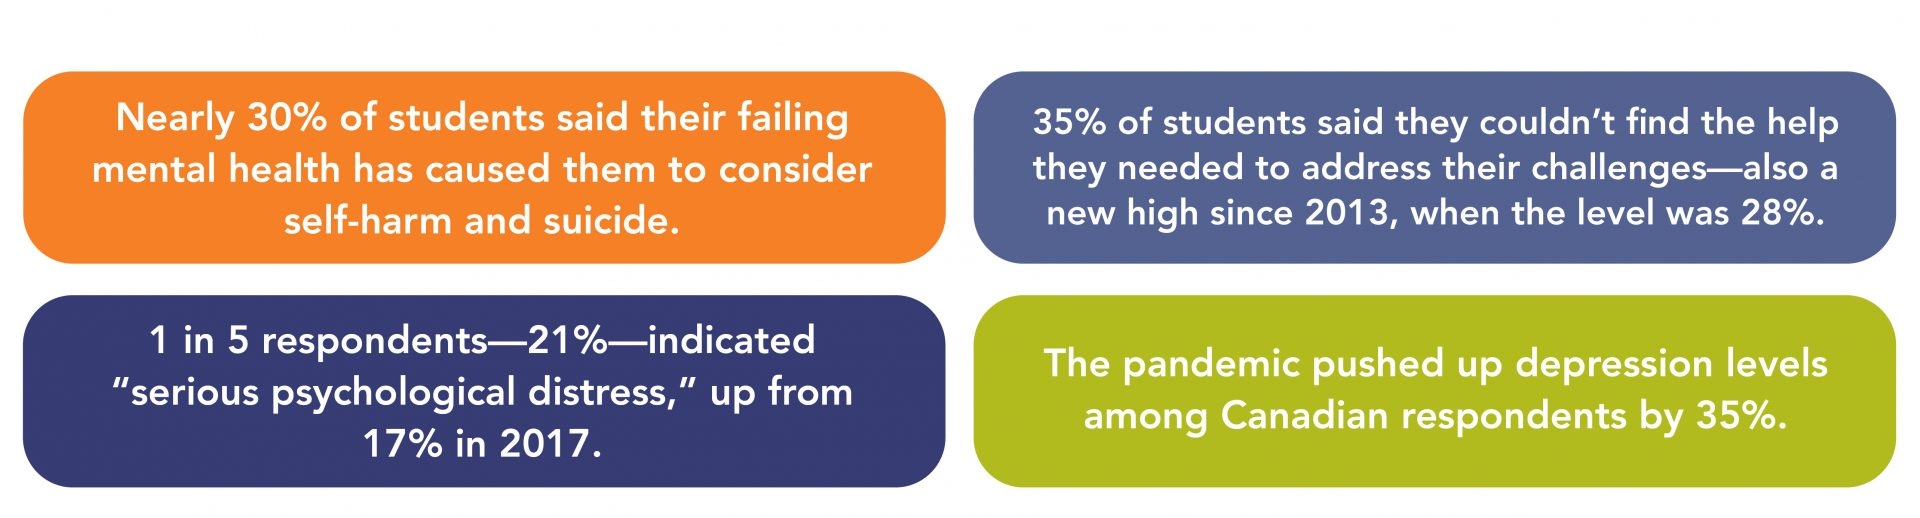 """Nearly 30% of students said their failing mental health has caused them to consider self-harm and suicide. 1 in 5 respondents—21%—indicated """"serious psychological distress,"""" up from 17% in 2017. 35% of students said they couldn't find the help they needed to address their challenges—also a new high since 2013, when the level was 28%. The pandemic pushed up depression levels among Canadian respondents by 35%."""